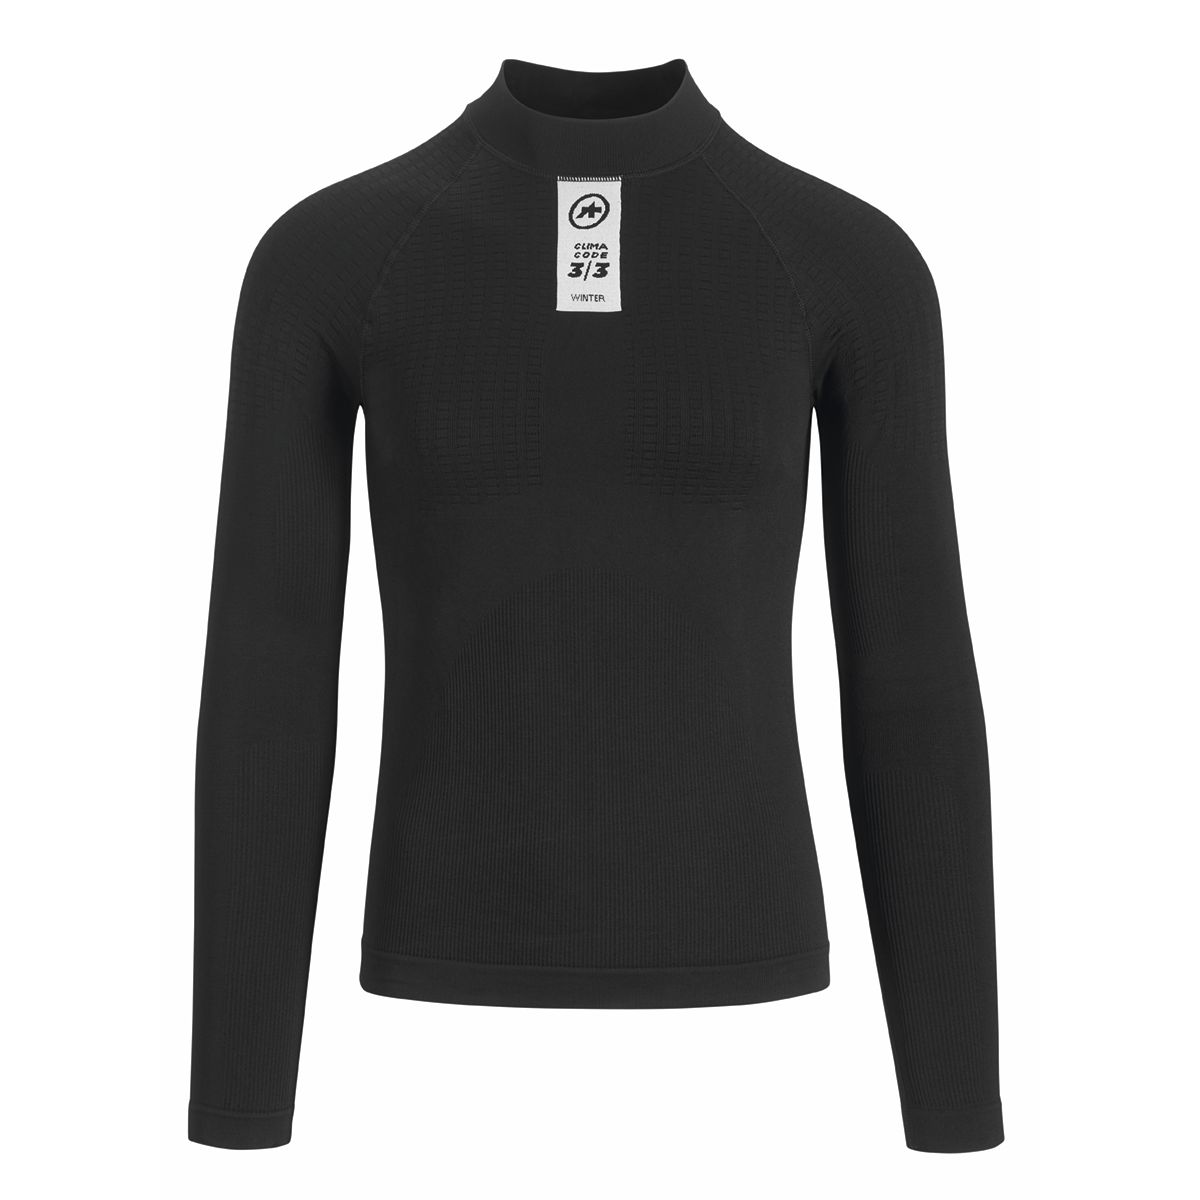 Assos SKINFOIL Winter LS Base Layer | Base layers